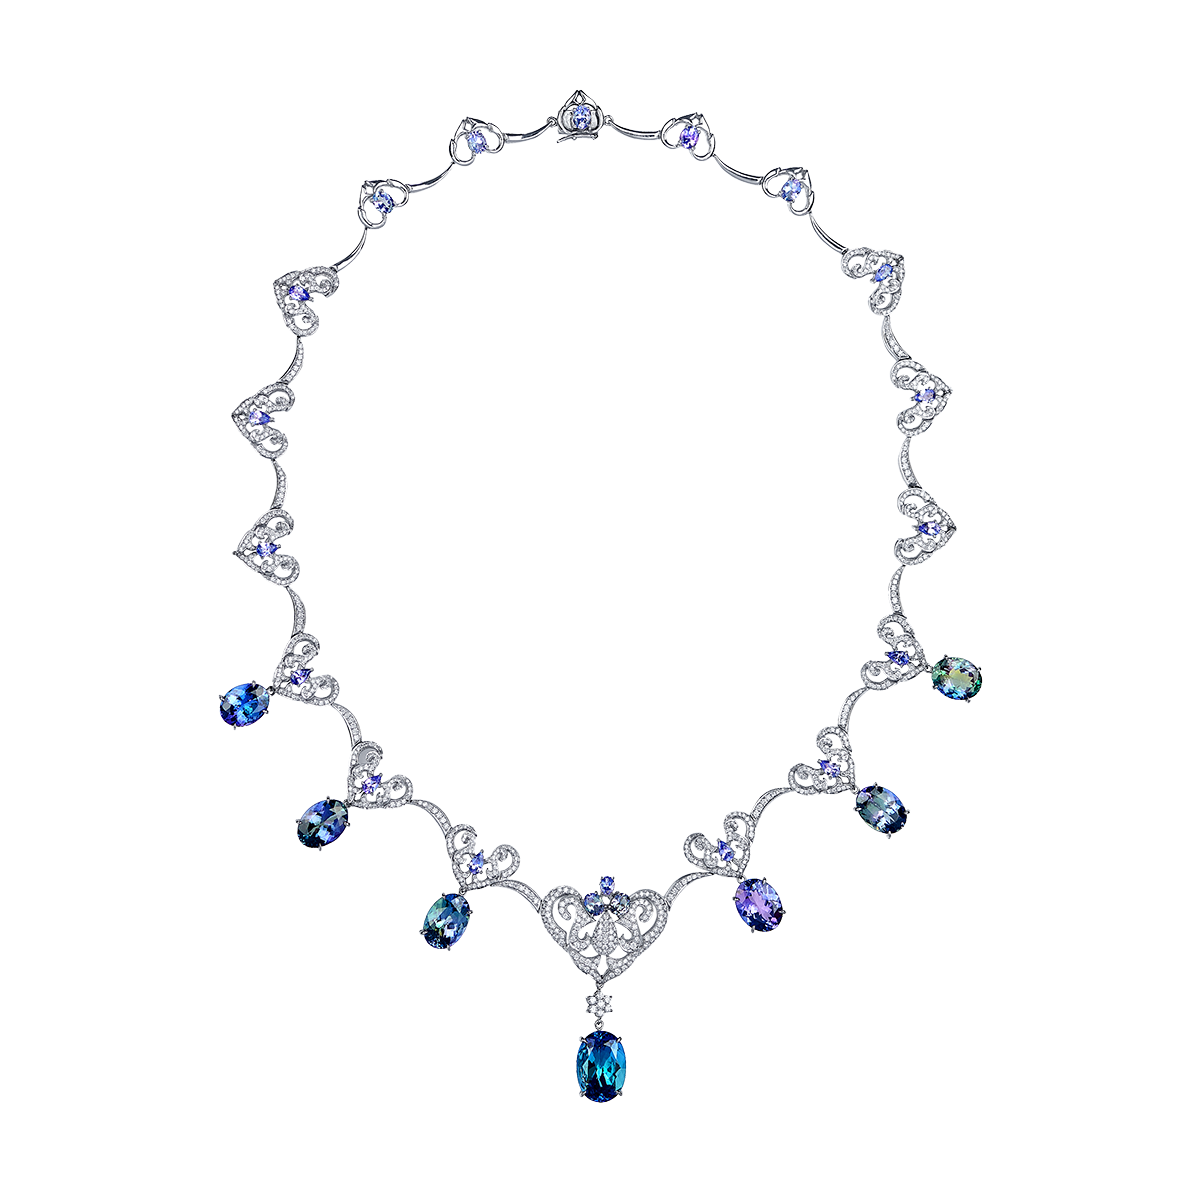 35.05克拉 丹泉石套鍊